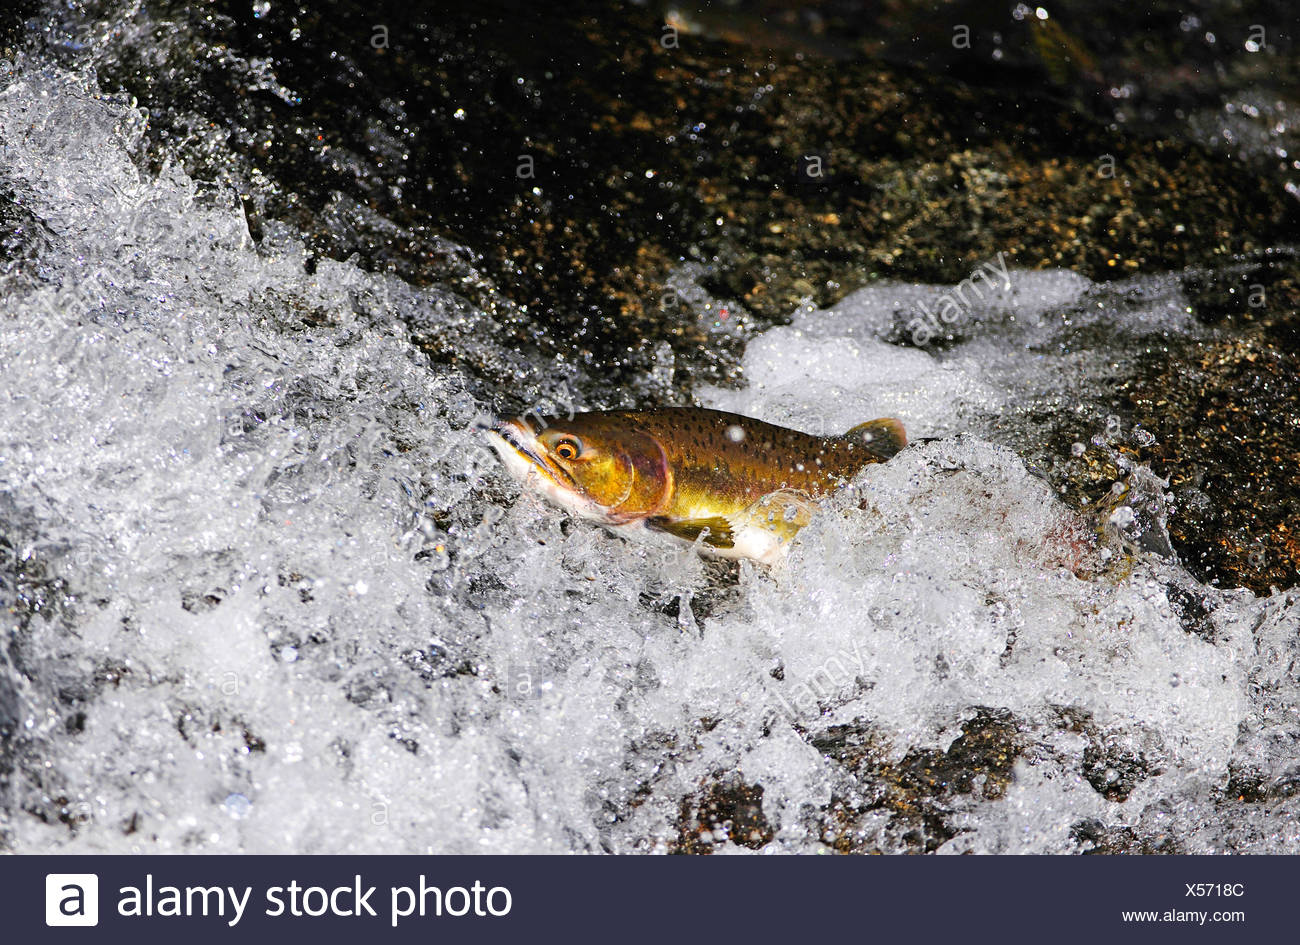 Pacific salmon (Oncorhynchus spec.), overcoming a waterfall, USA, Alaska, Denali Nationalpark - Stock Image